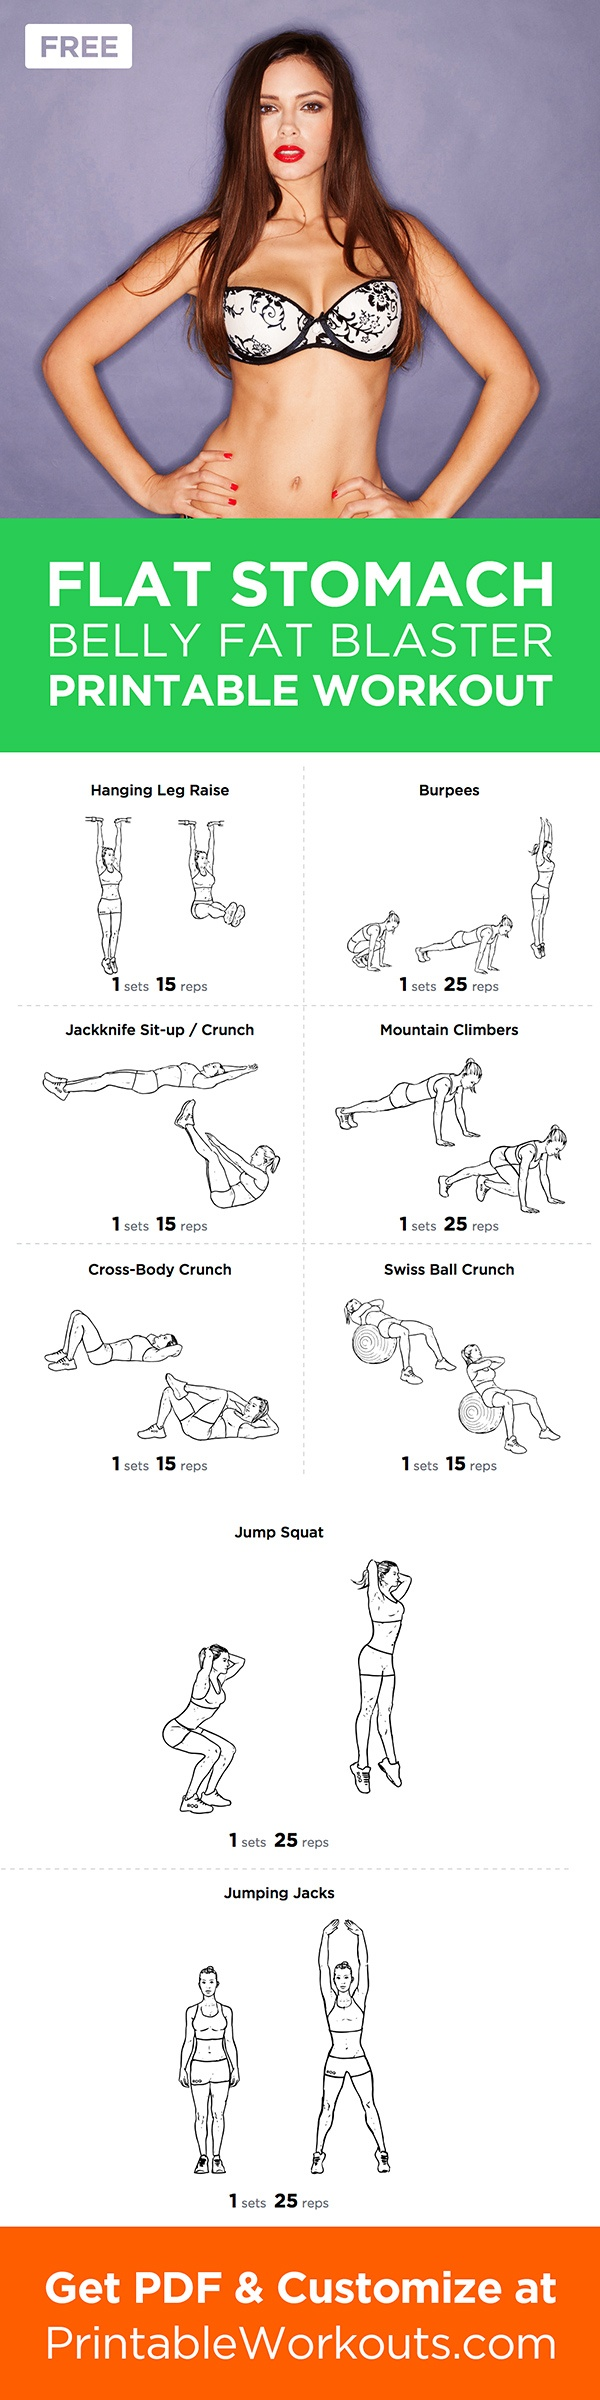 Flat Stomach - InspireMyWorkout.com - A collection of